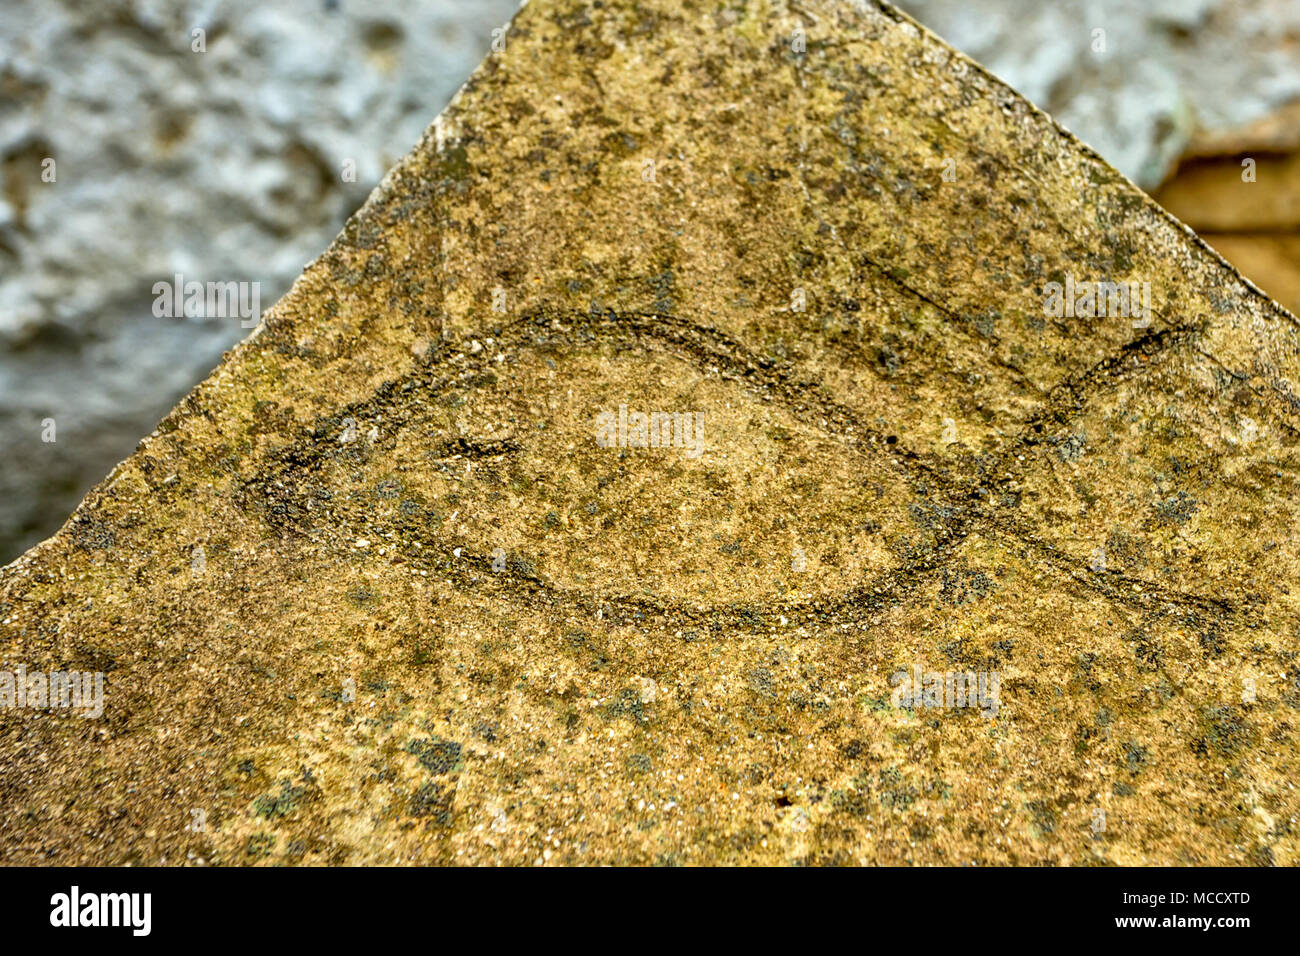 Ichthus fish symbol stock photos ichthus fish symbol stock images ichthus christian symbol in stone stock image biocorpaavc Image collections